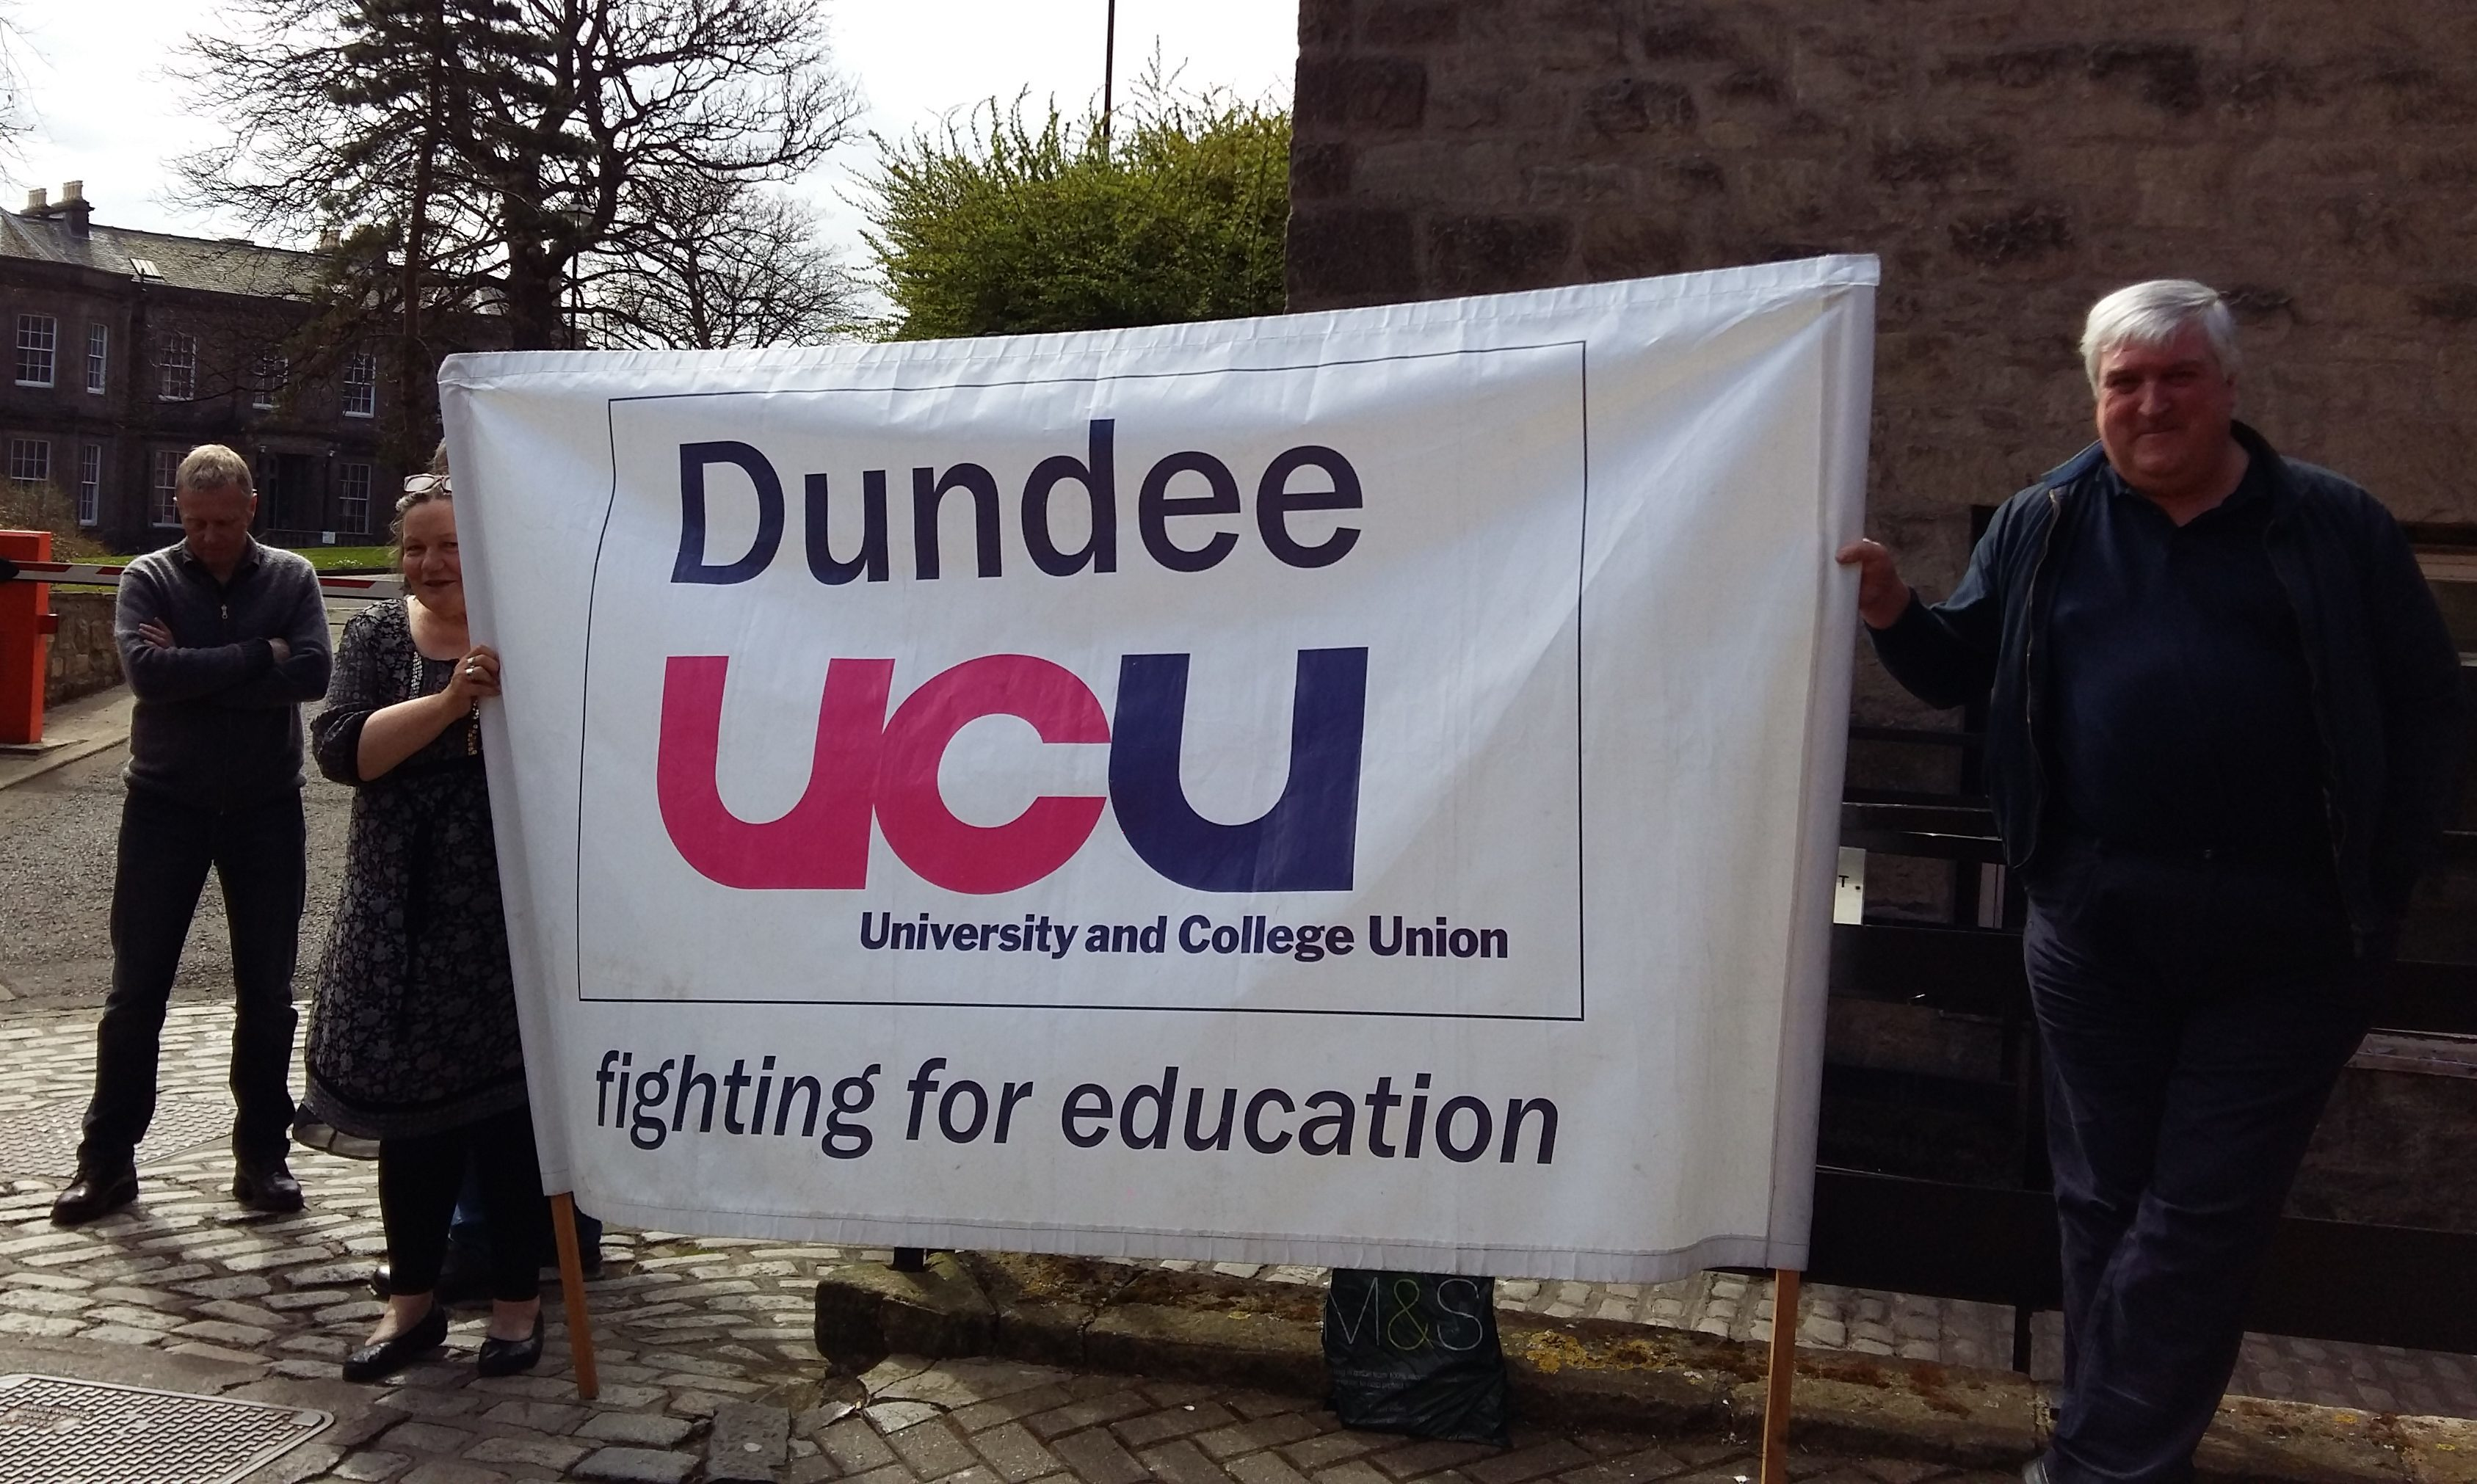 Dundee UCU members have been involved in the ongoing dispute.